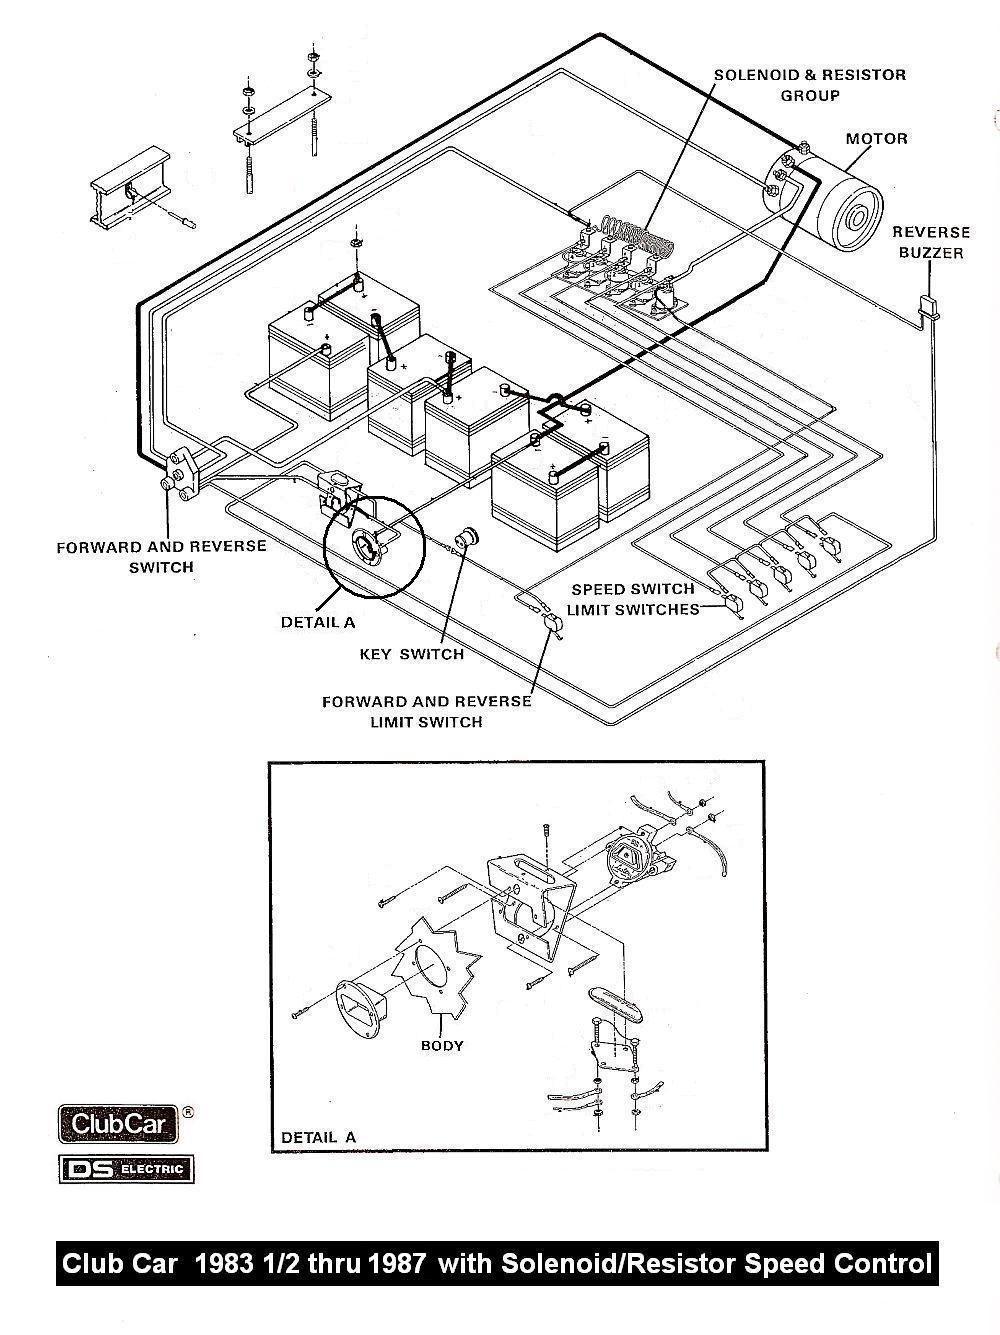 0e8d045370be7682b159825224221faa vintagegolfcartparts com *freezer & crock pot* pinterest club car golf cart 36 volt battery wiring diagram at readyjetset.co